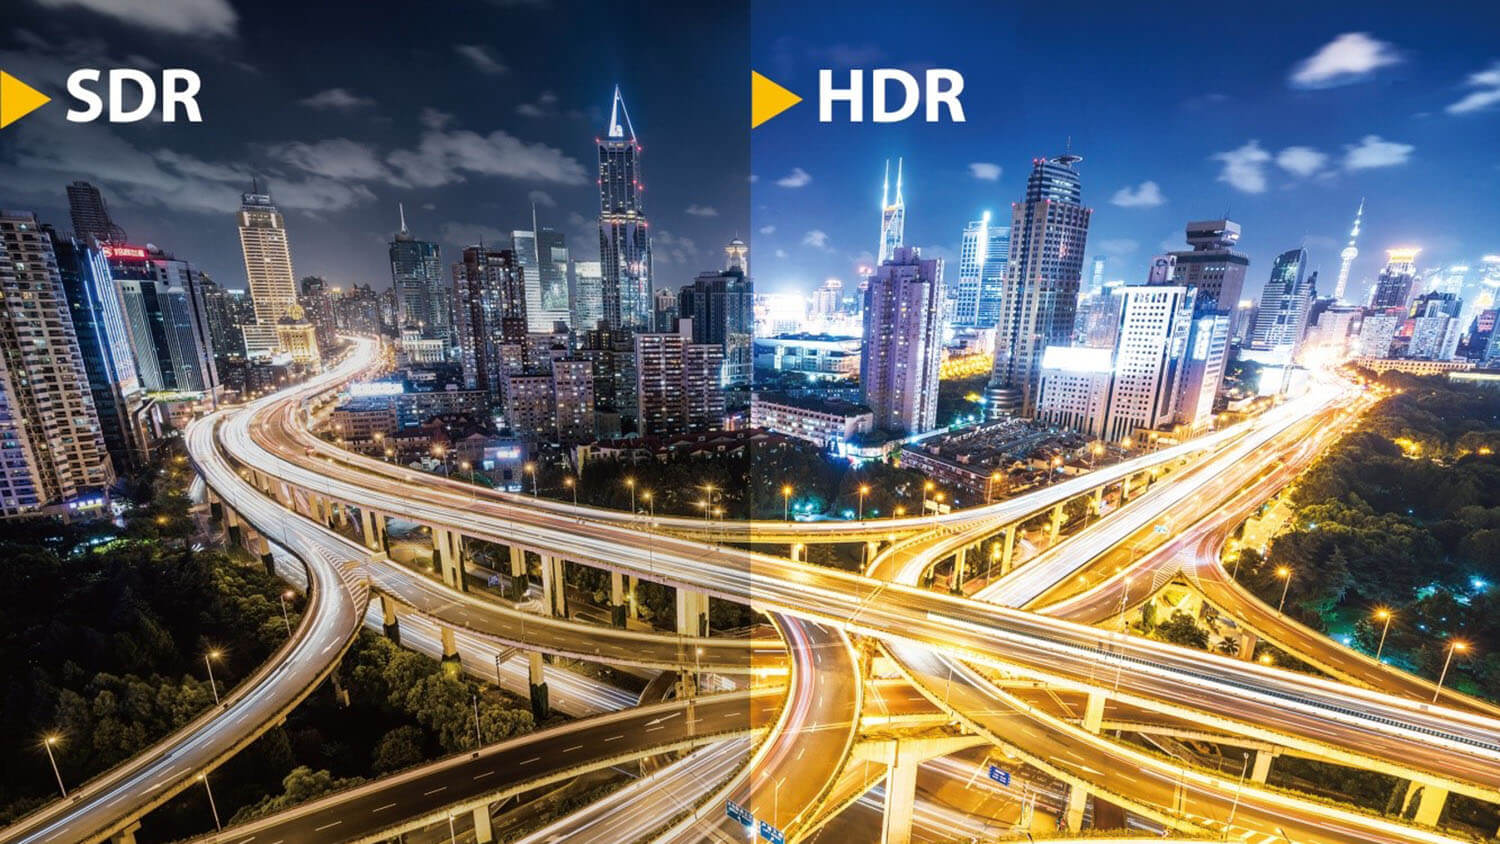 convert HDR to SDR